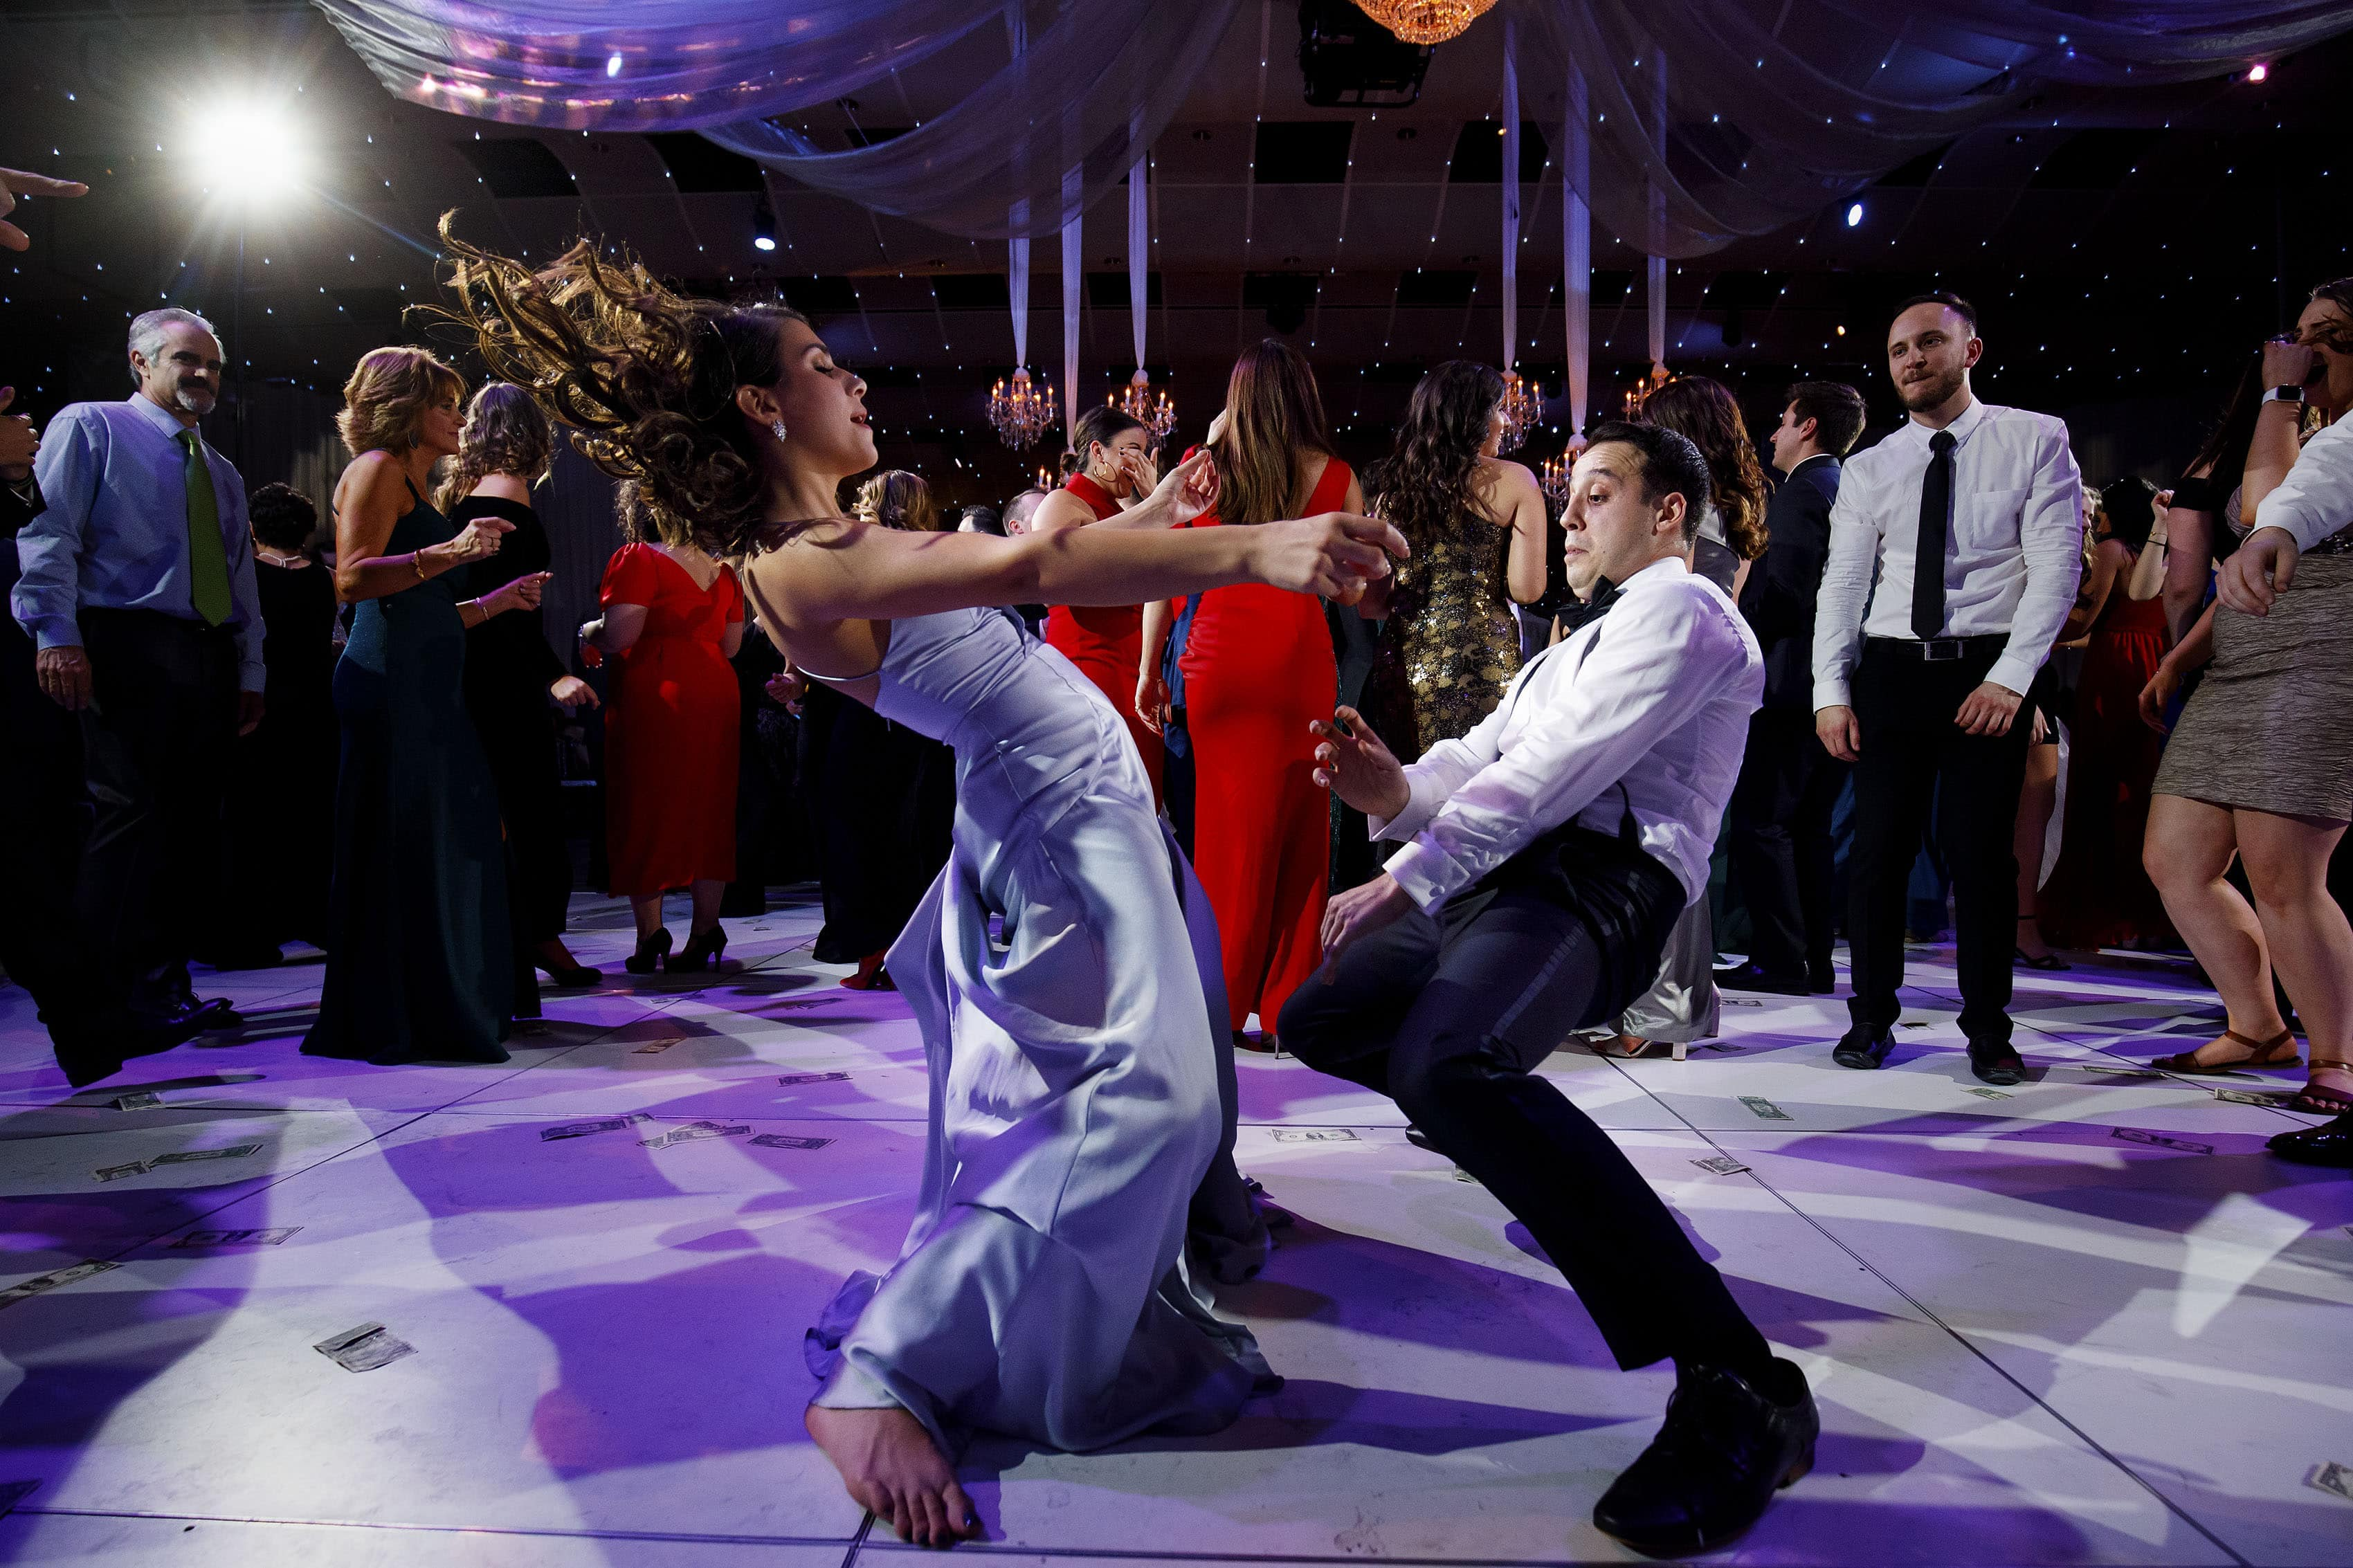 Guests dance during a wedding recetion at Seawell Ballroom